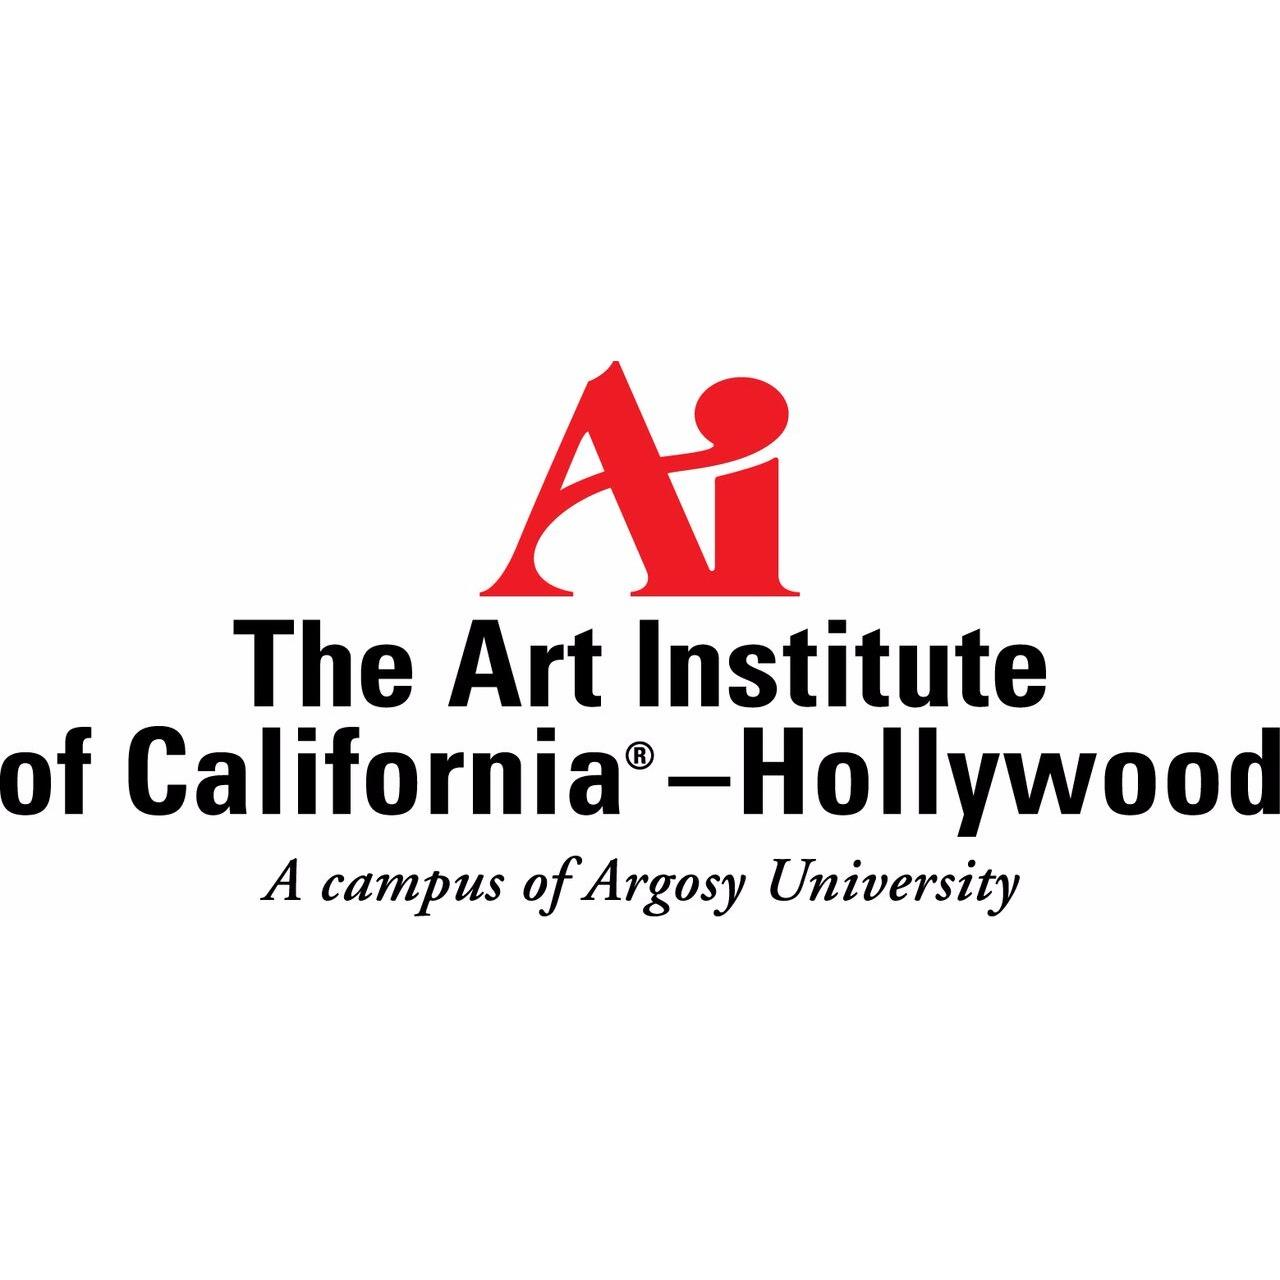 The Art Institute of California - Hollywood